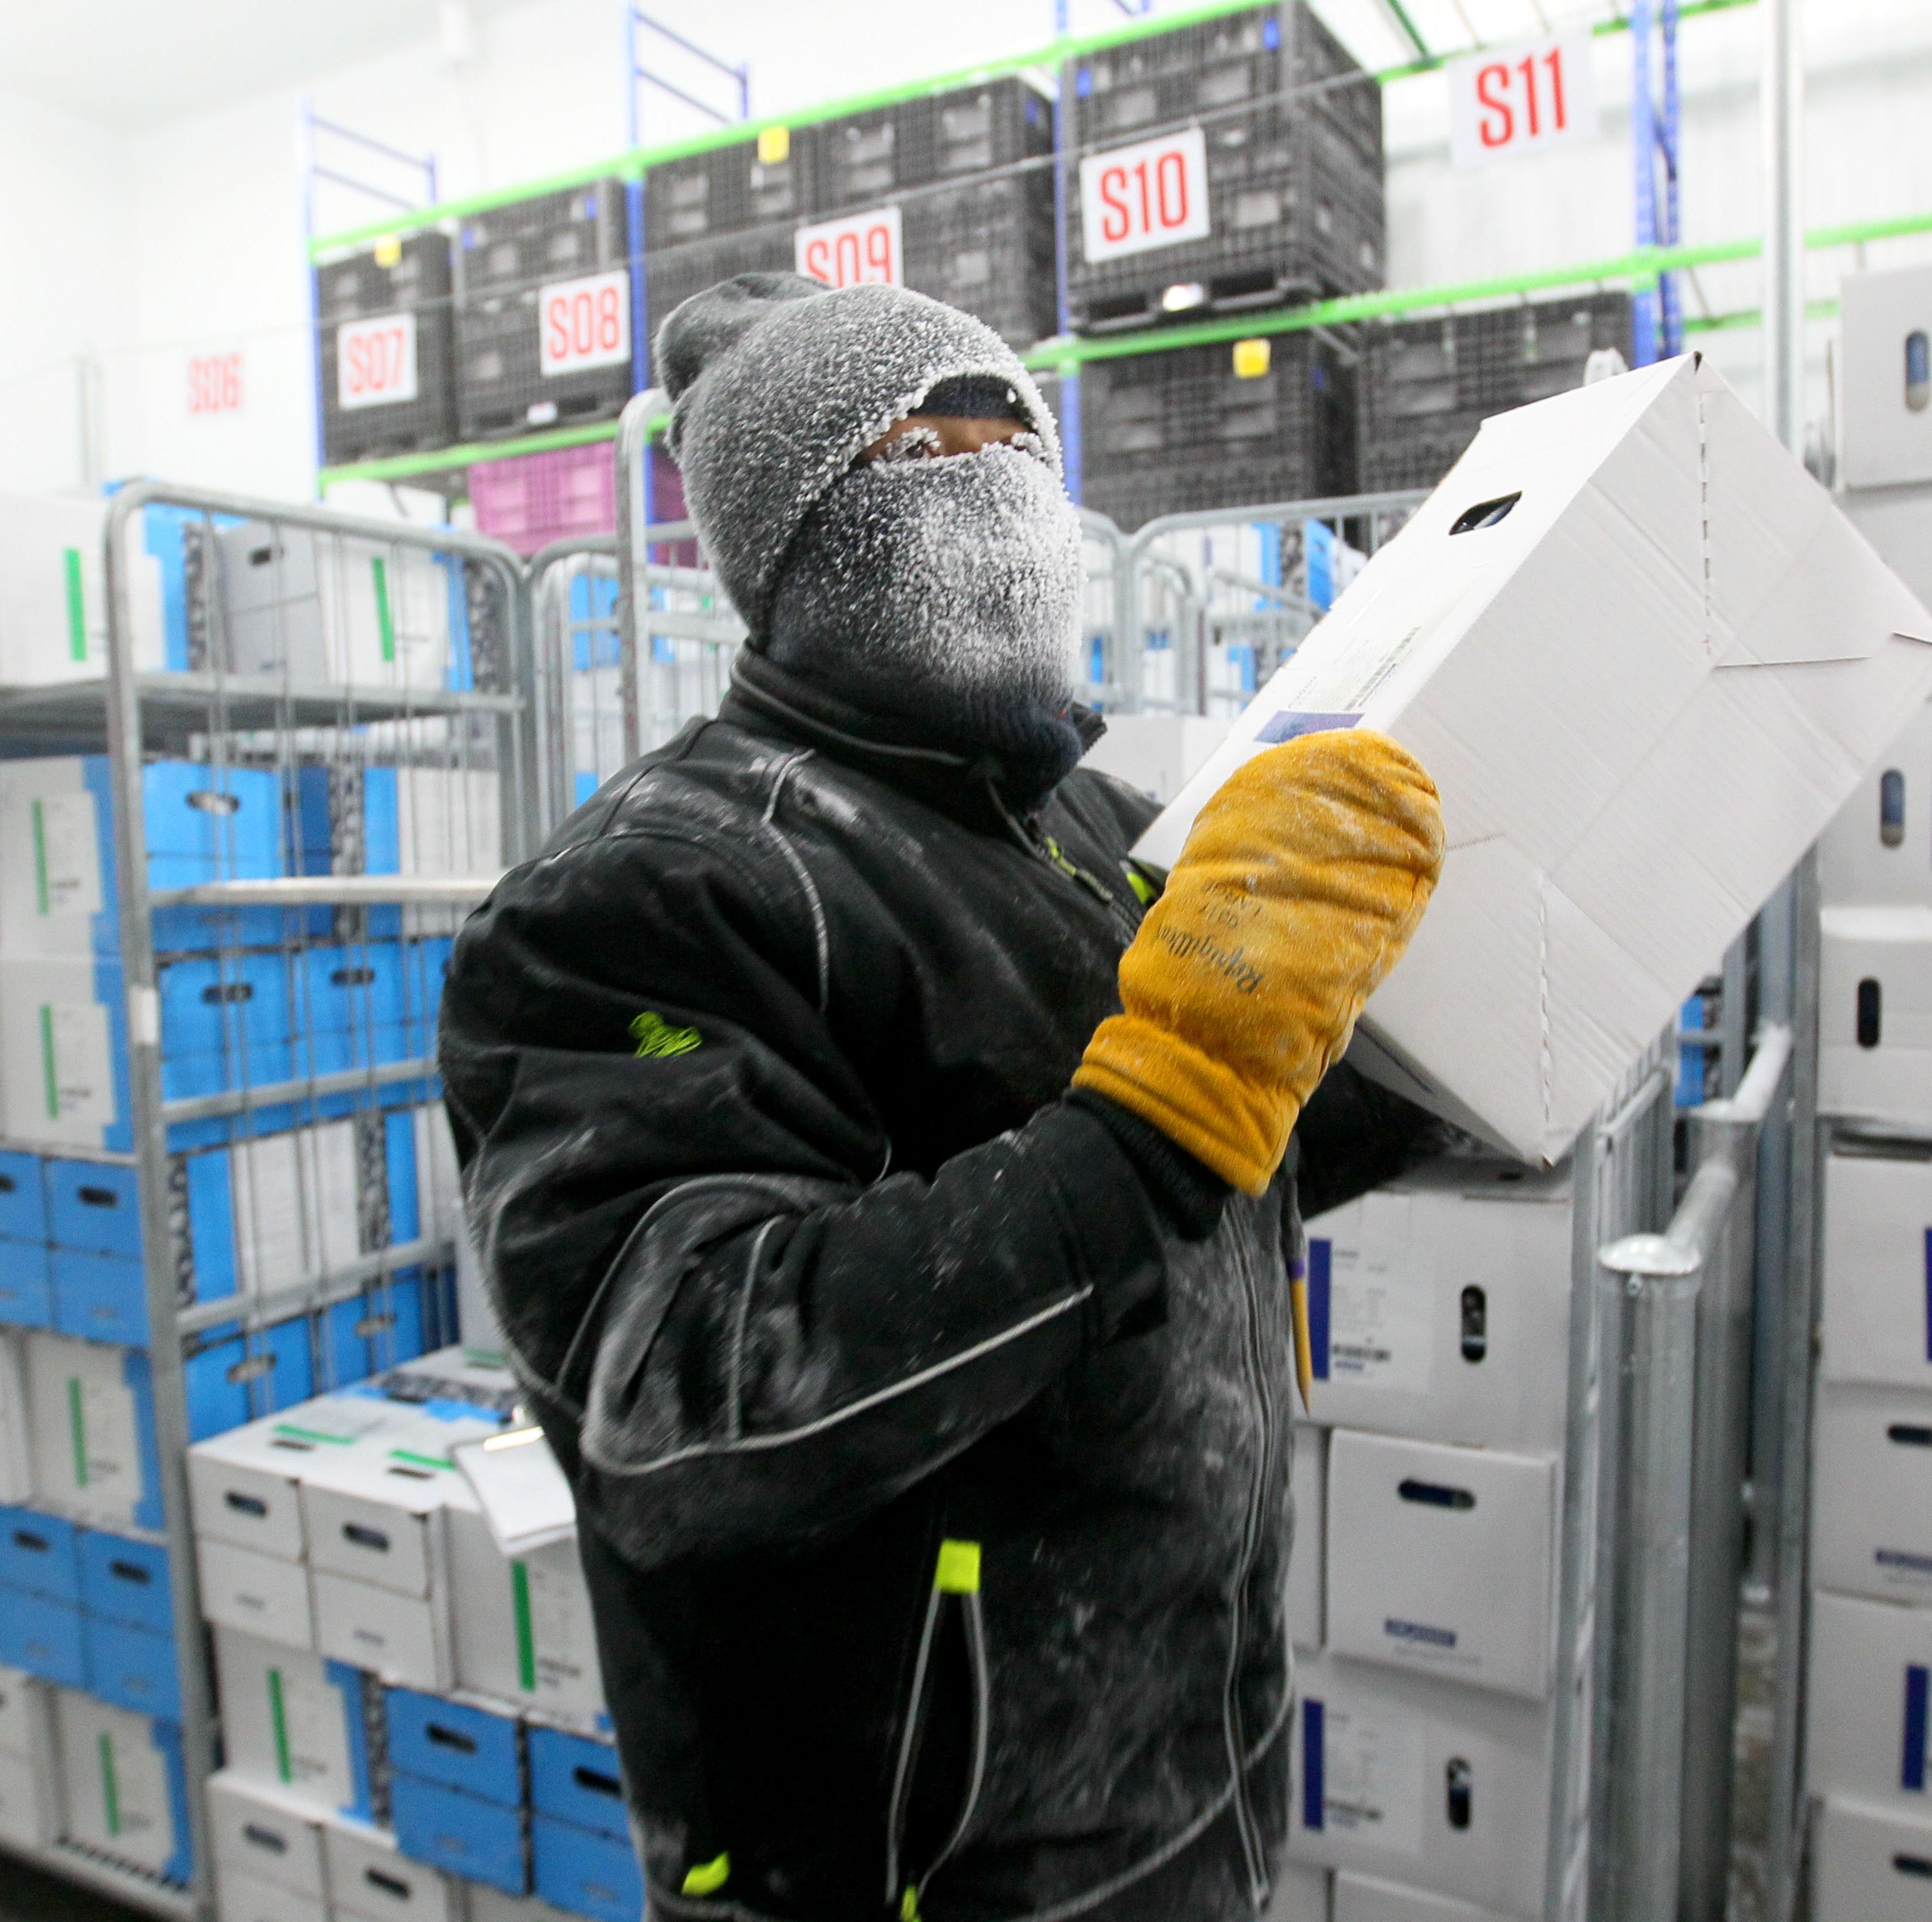 Kenny Jolliff, a freezer operator, picks orders of frozen bacteria cultures Tuesday inside a super freezer at Chr Hansen in New Berlin. Workers, dressed in double-lined suits, stay in the freezers for about two hours before taking a 20-minute break to warm up. The freezer is kept nearly 70 degrees below zero to store bacteria cultures used to make cheeses, yogurts and other dairy products, as well as wine and meat products. The company is in the process of adding 19,000 square feet of super freezer space. When finished, it will be one of the largest such freezers in the world, according to the company.